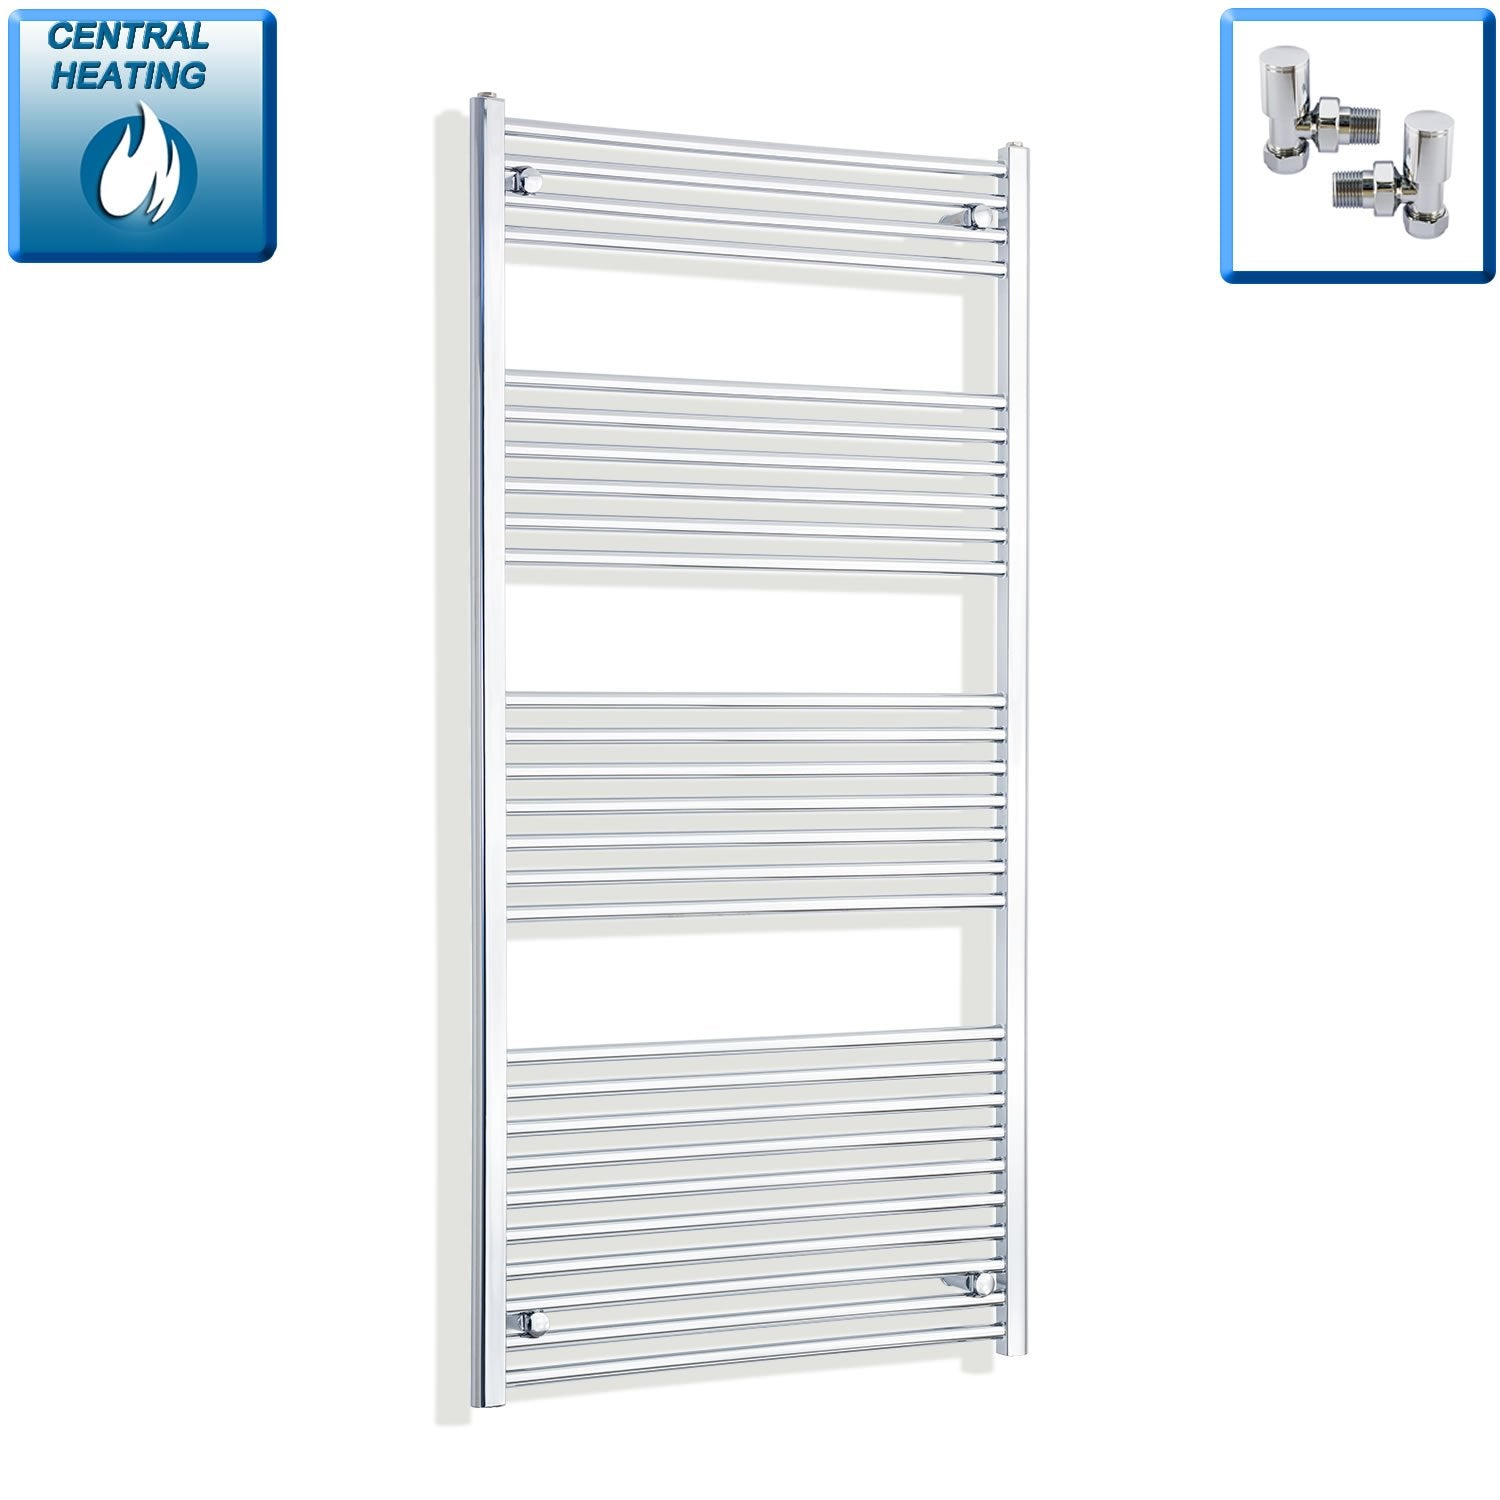 750mm Wide 1600mm High Flat Chrome Heated Towel Rail Radiator HTR,With Angled Valve